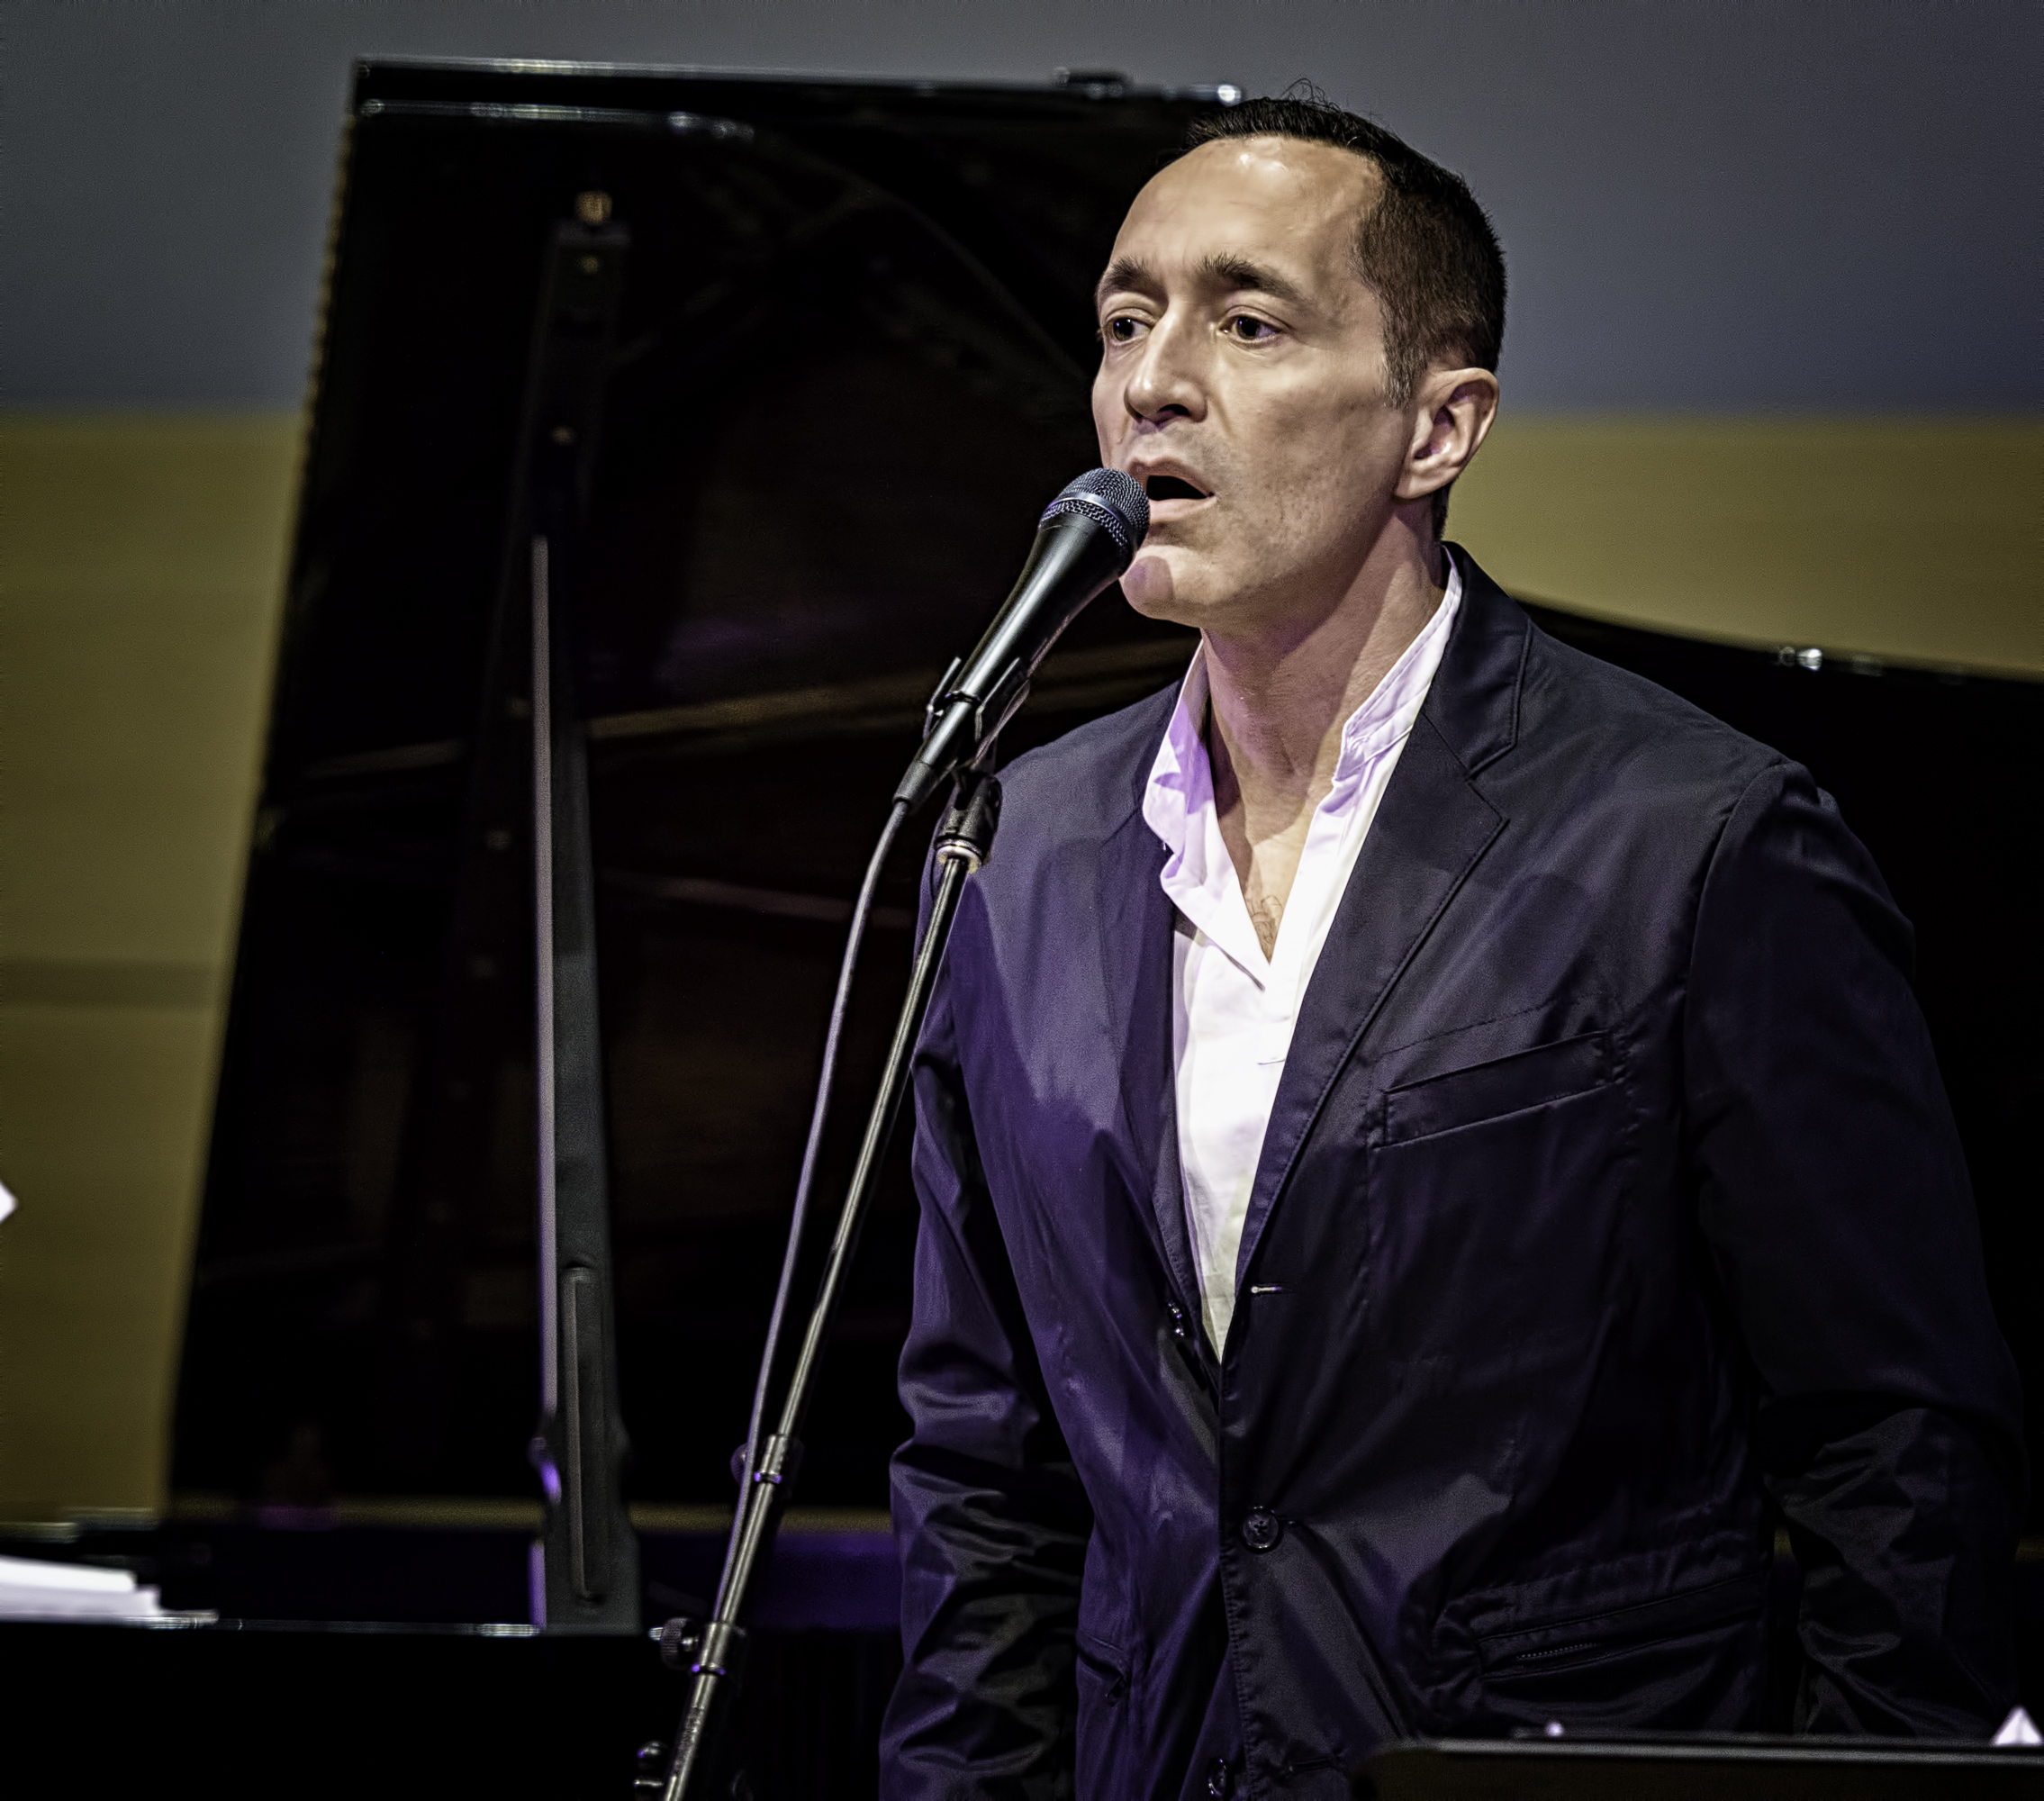 Theo Bleckmann with Group At The NYC Winter Jazzfest 2016